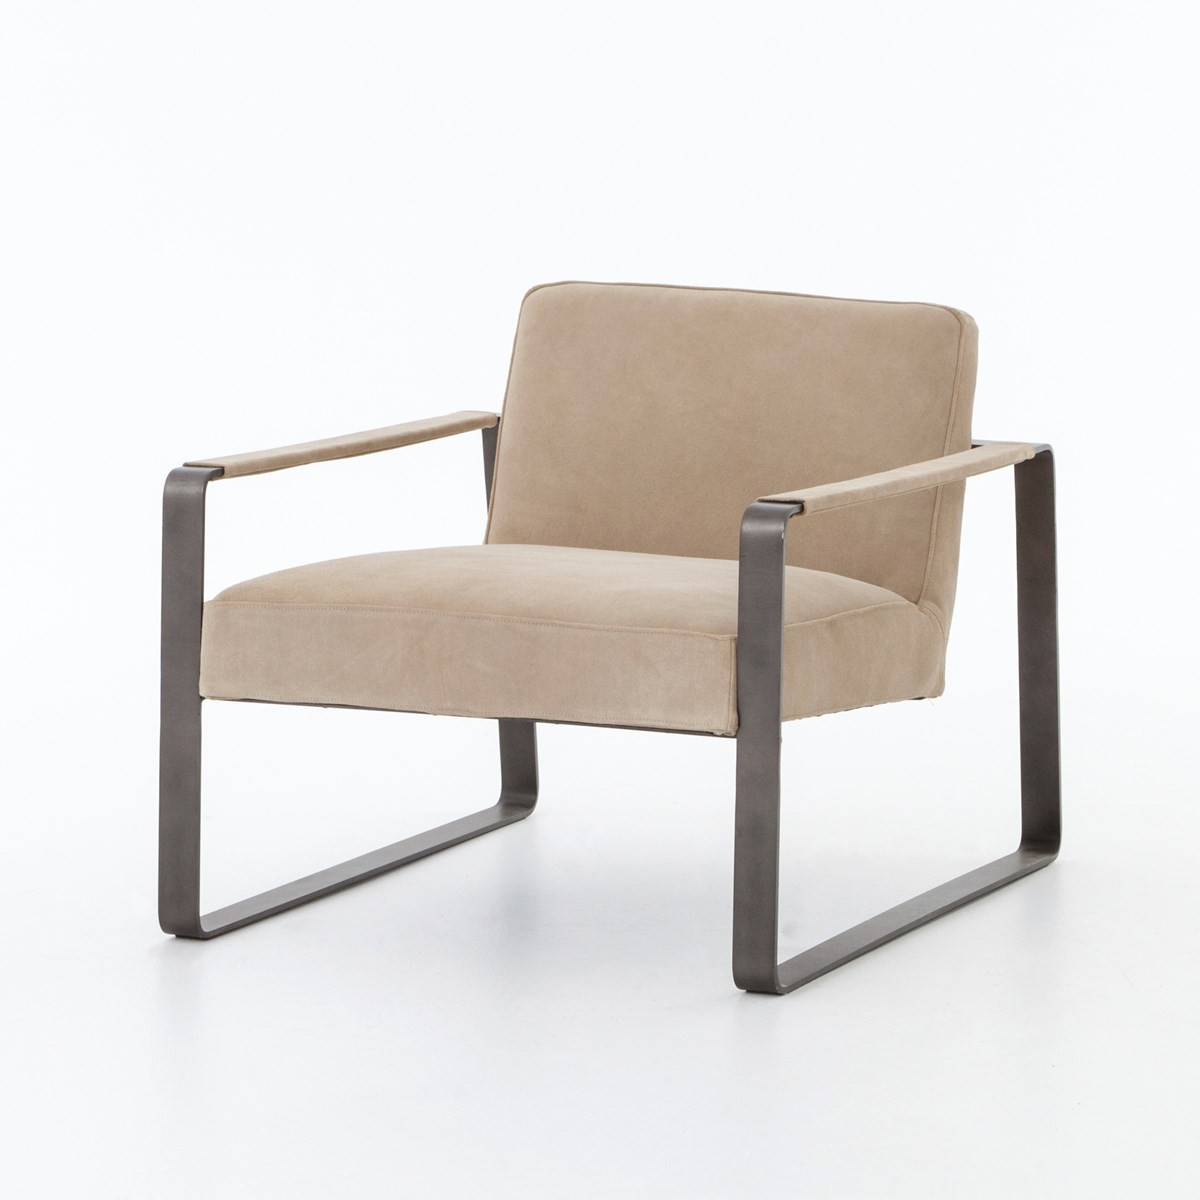 lars beige nubuck leather lounge chair - Leather Lounge Chair